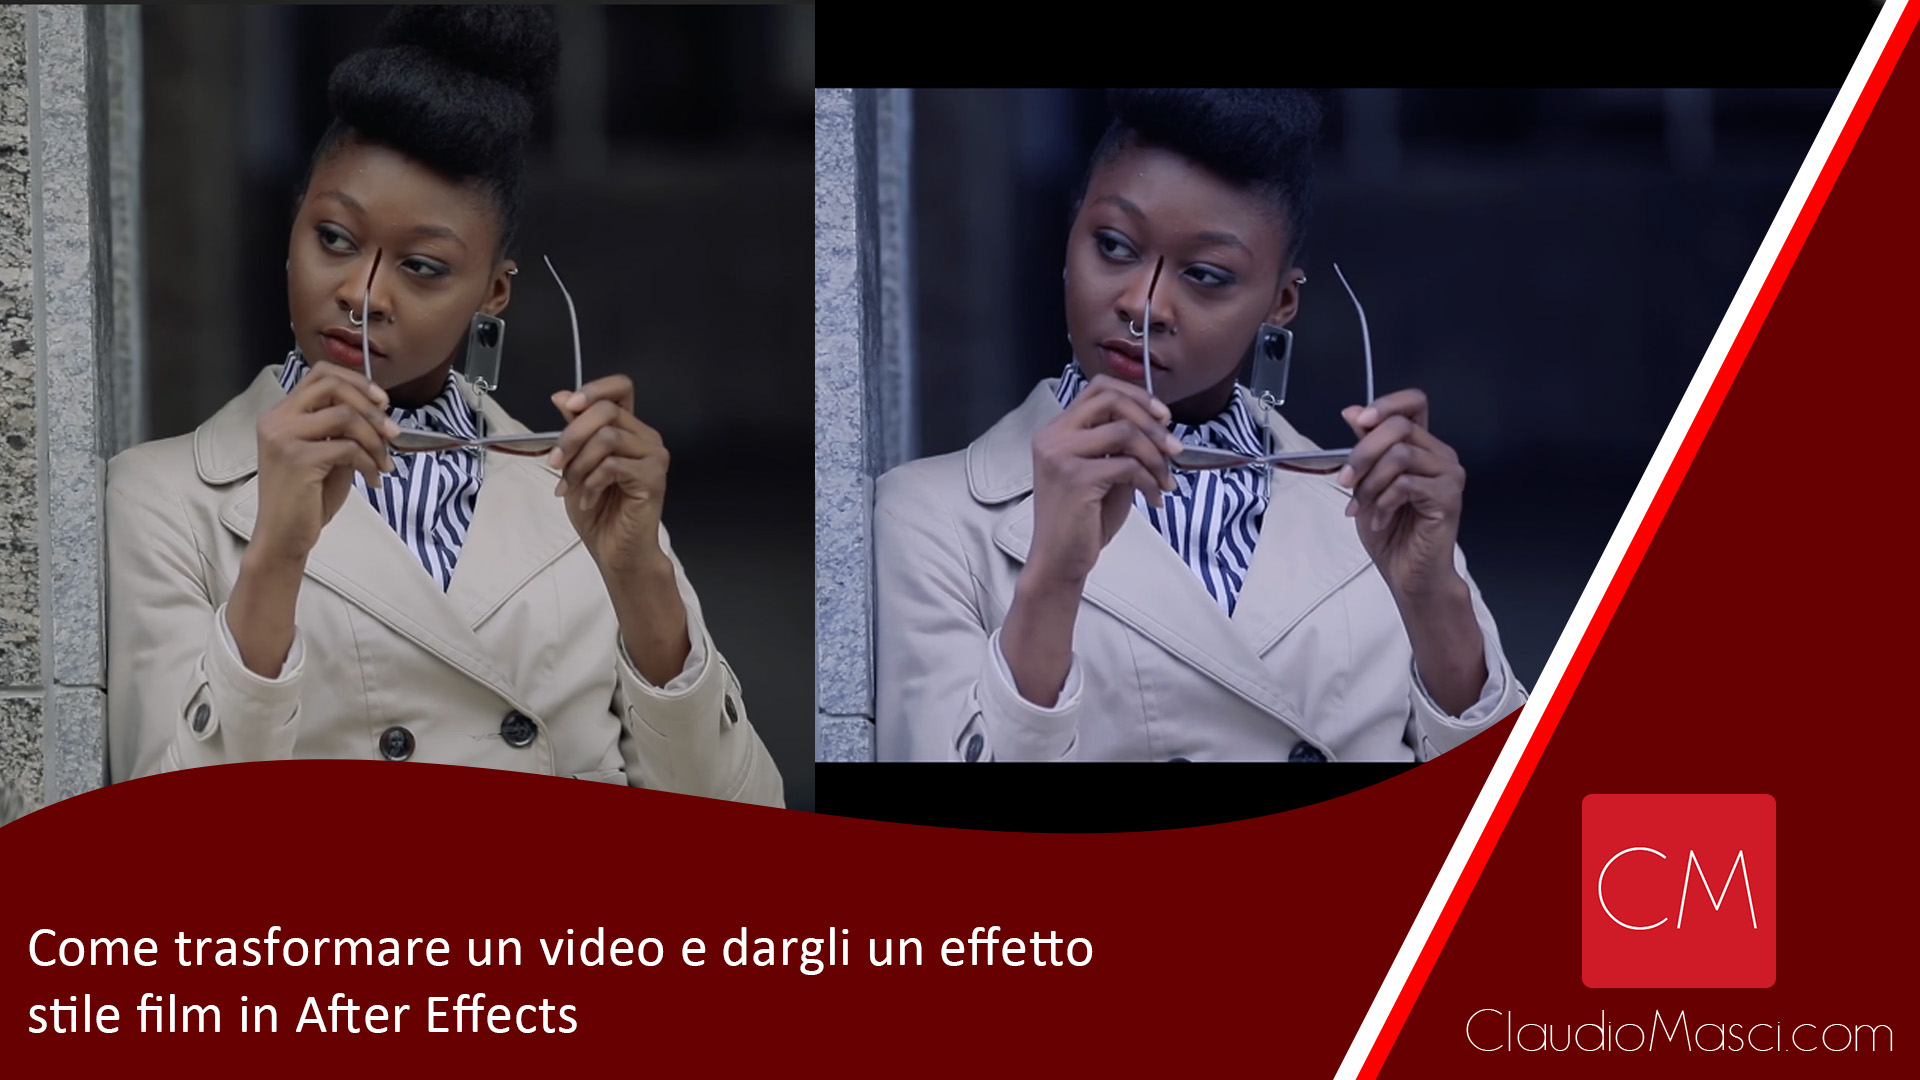 Come trasformare un video e dargli un effetto stile film in After Effects